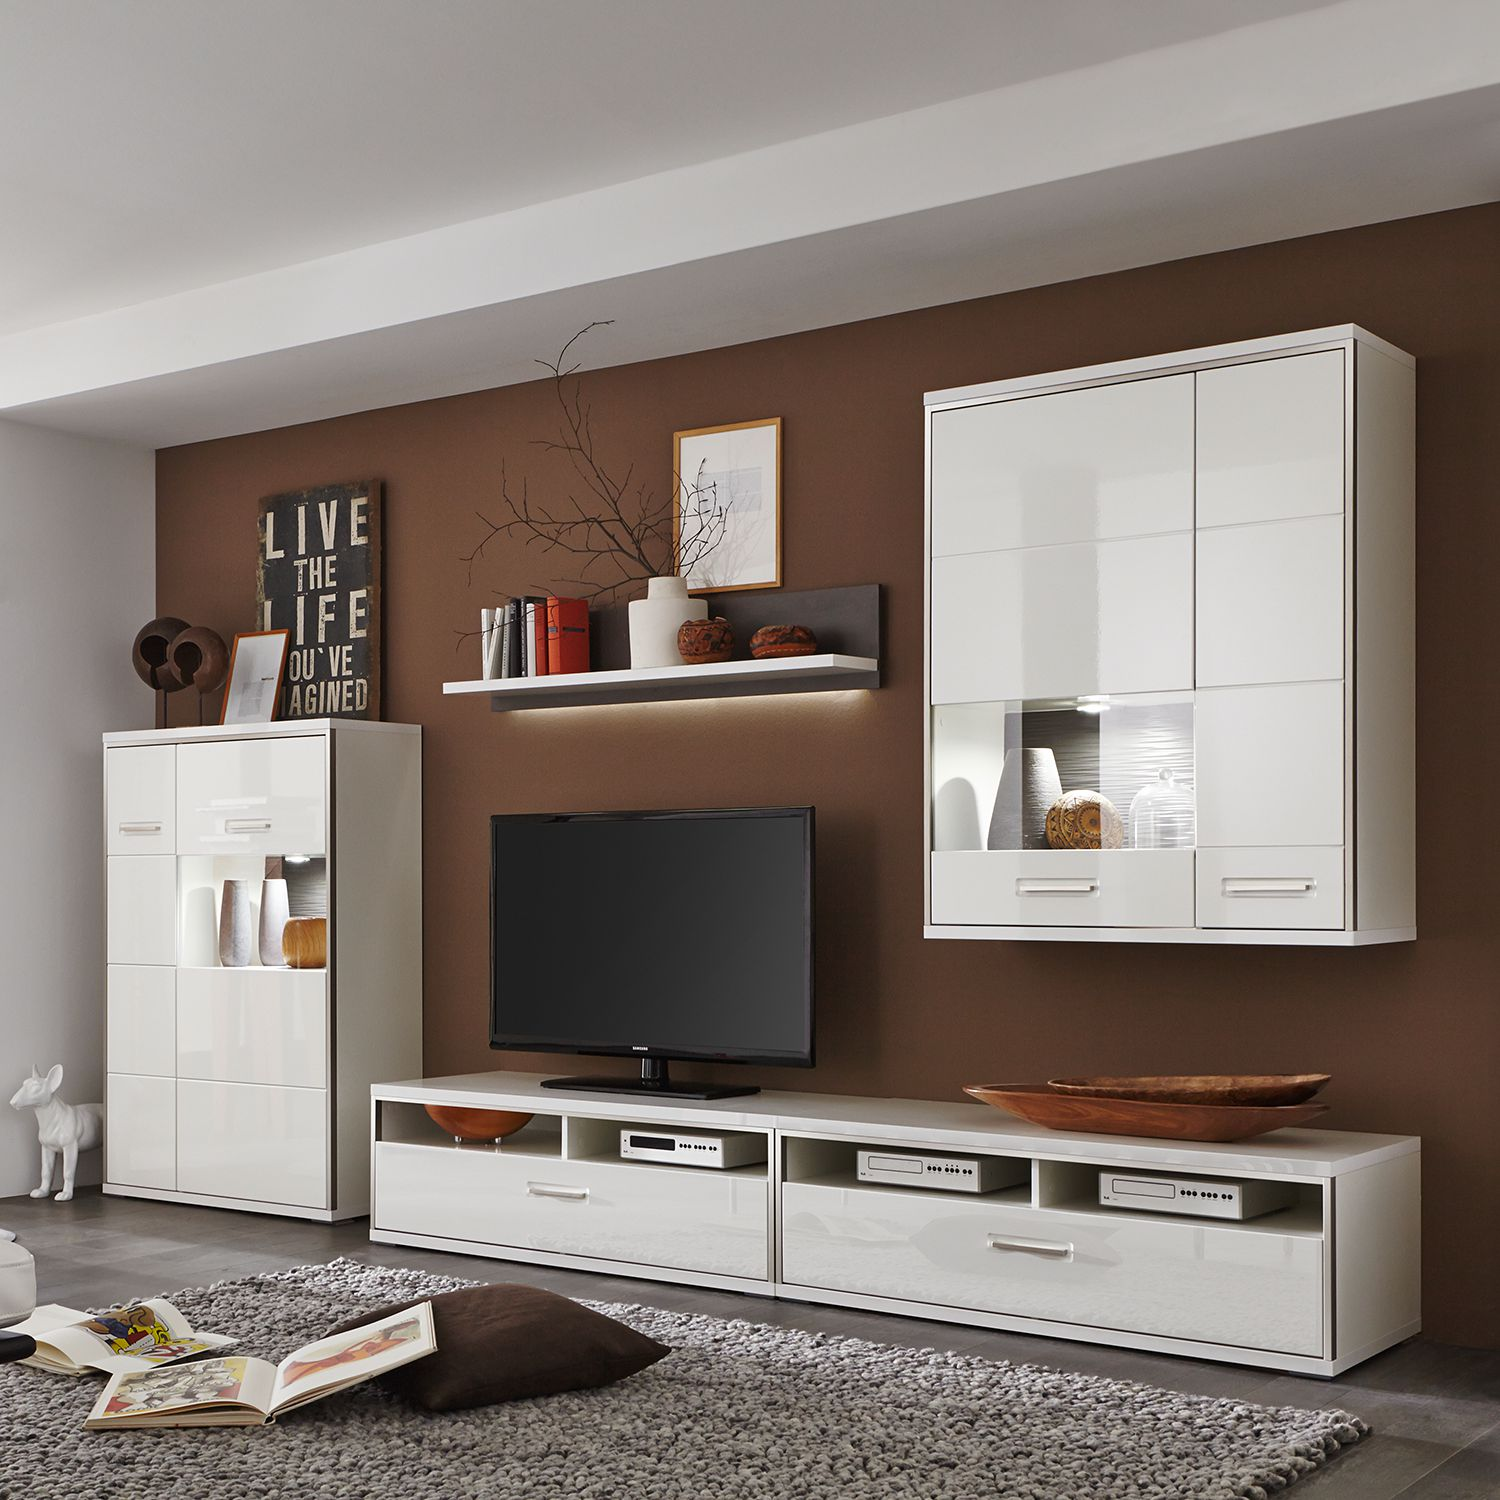 tv lowboard katakana iii hochglanz wei grau roomscape m bel preiswert online kaufen. Black Bedroom Furniture Sets. Home Design Ideas